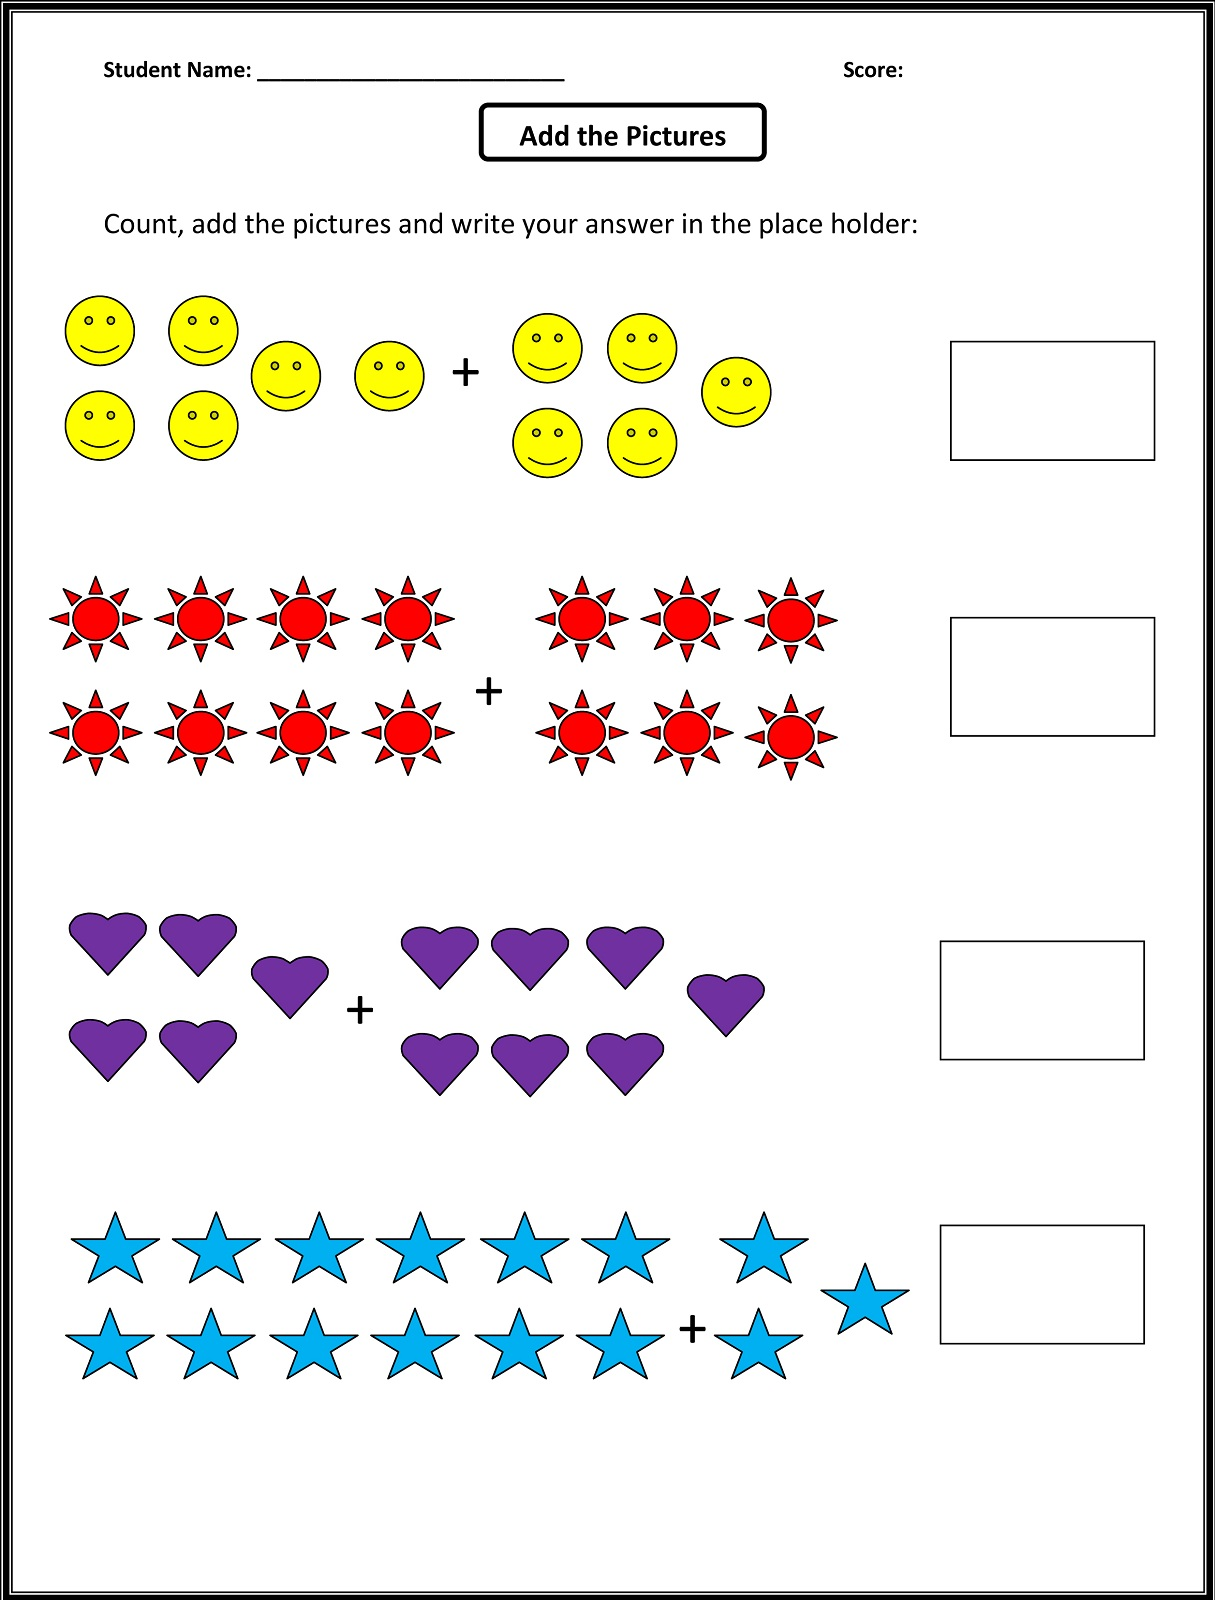 Uncategorized 1st Grade Math Worksheets worksheets for 1st grade math activity shelter image via mathworksheets4kids com